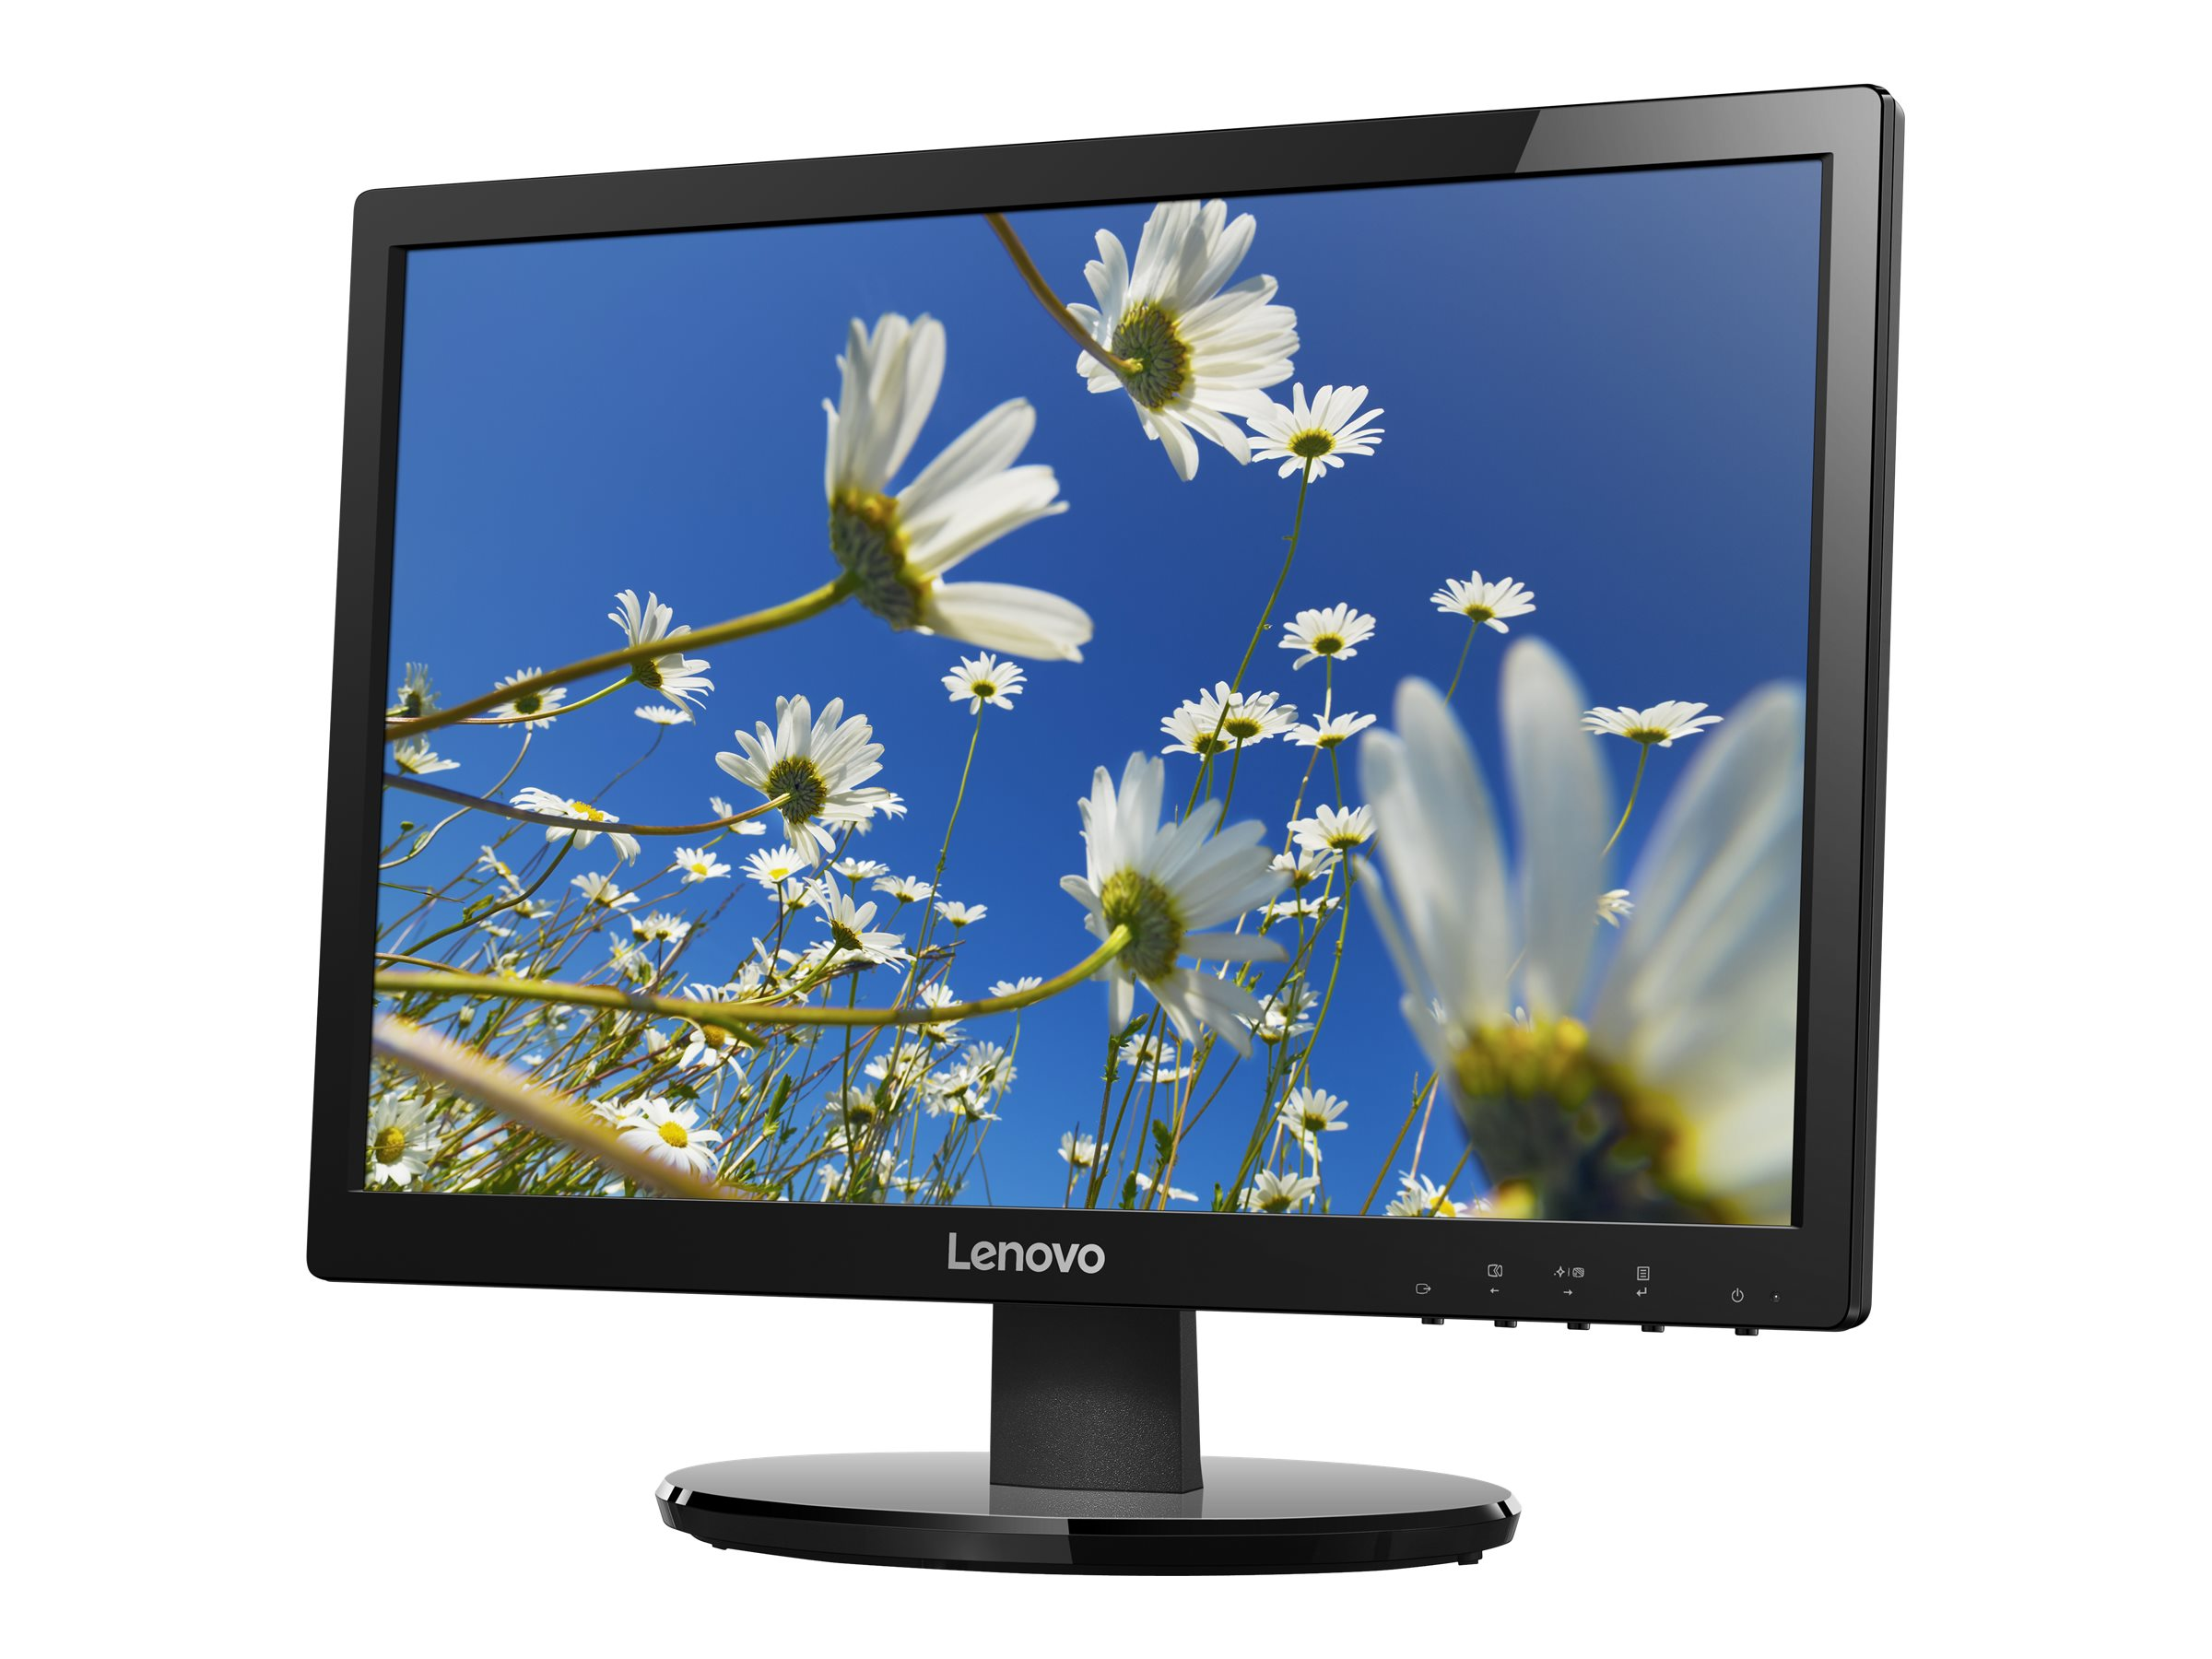 Lenovo 19.5 LI2054 LED-LCD Monitor, Black, 65BAACC1US